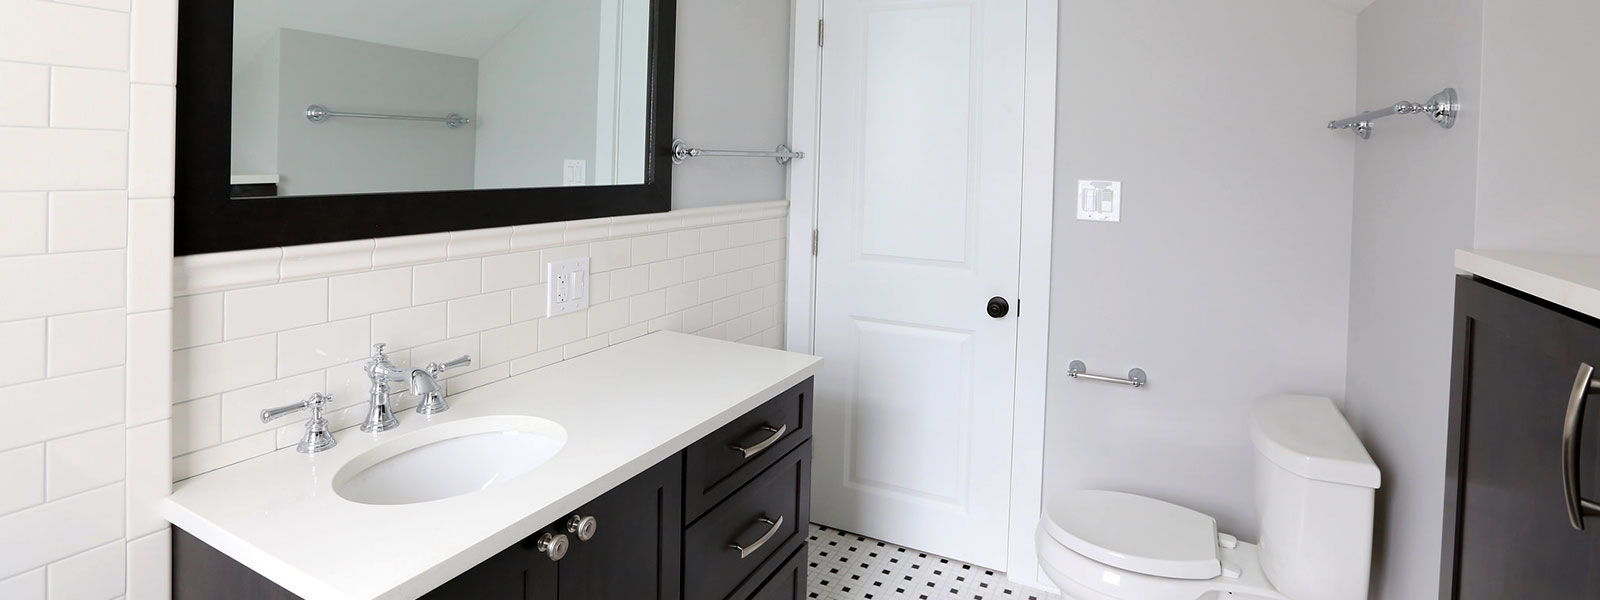 Chicago 39 s local remodeling experts a 1 pam home for Local bathroom contractors